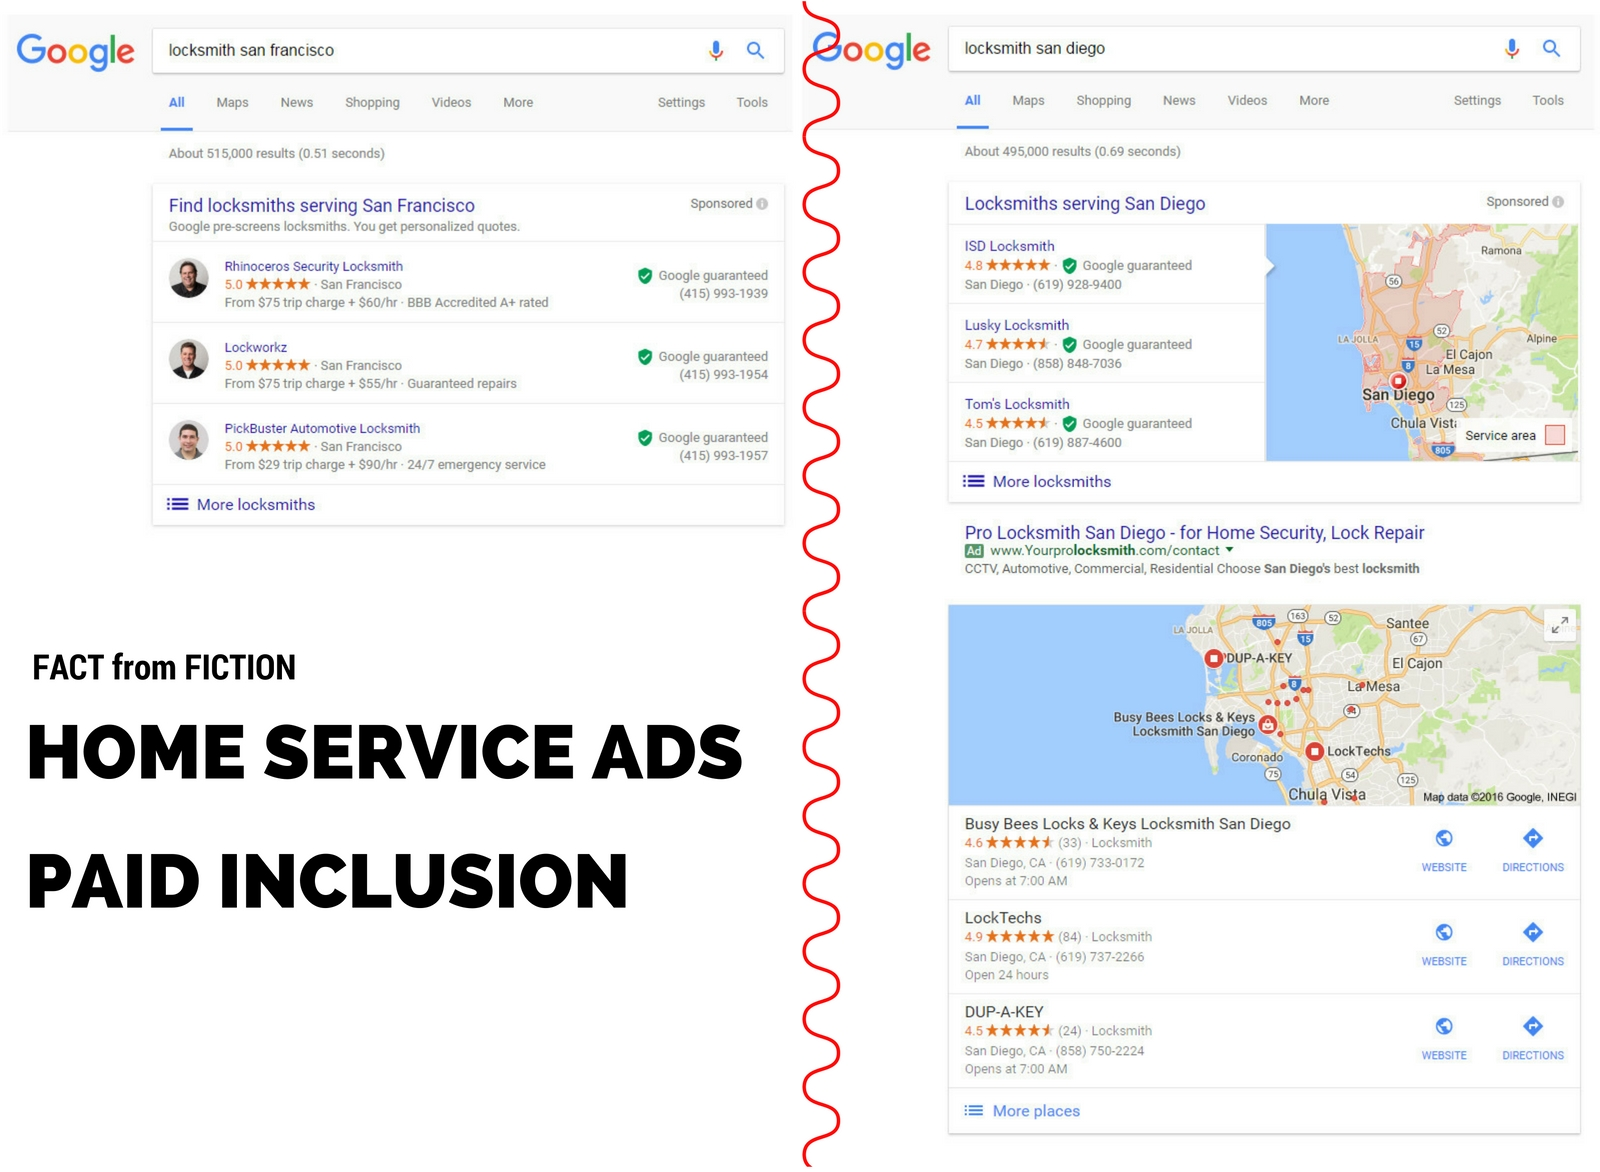 What is really going on with Google Home Service Ads